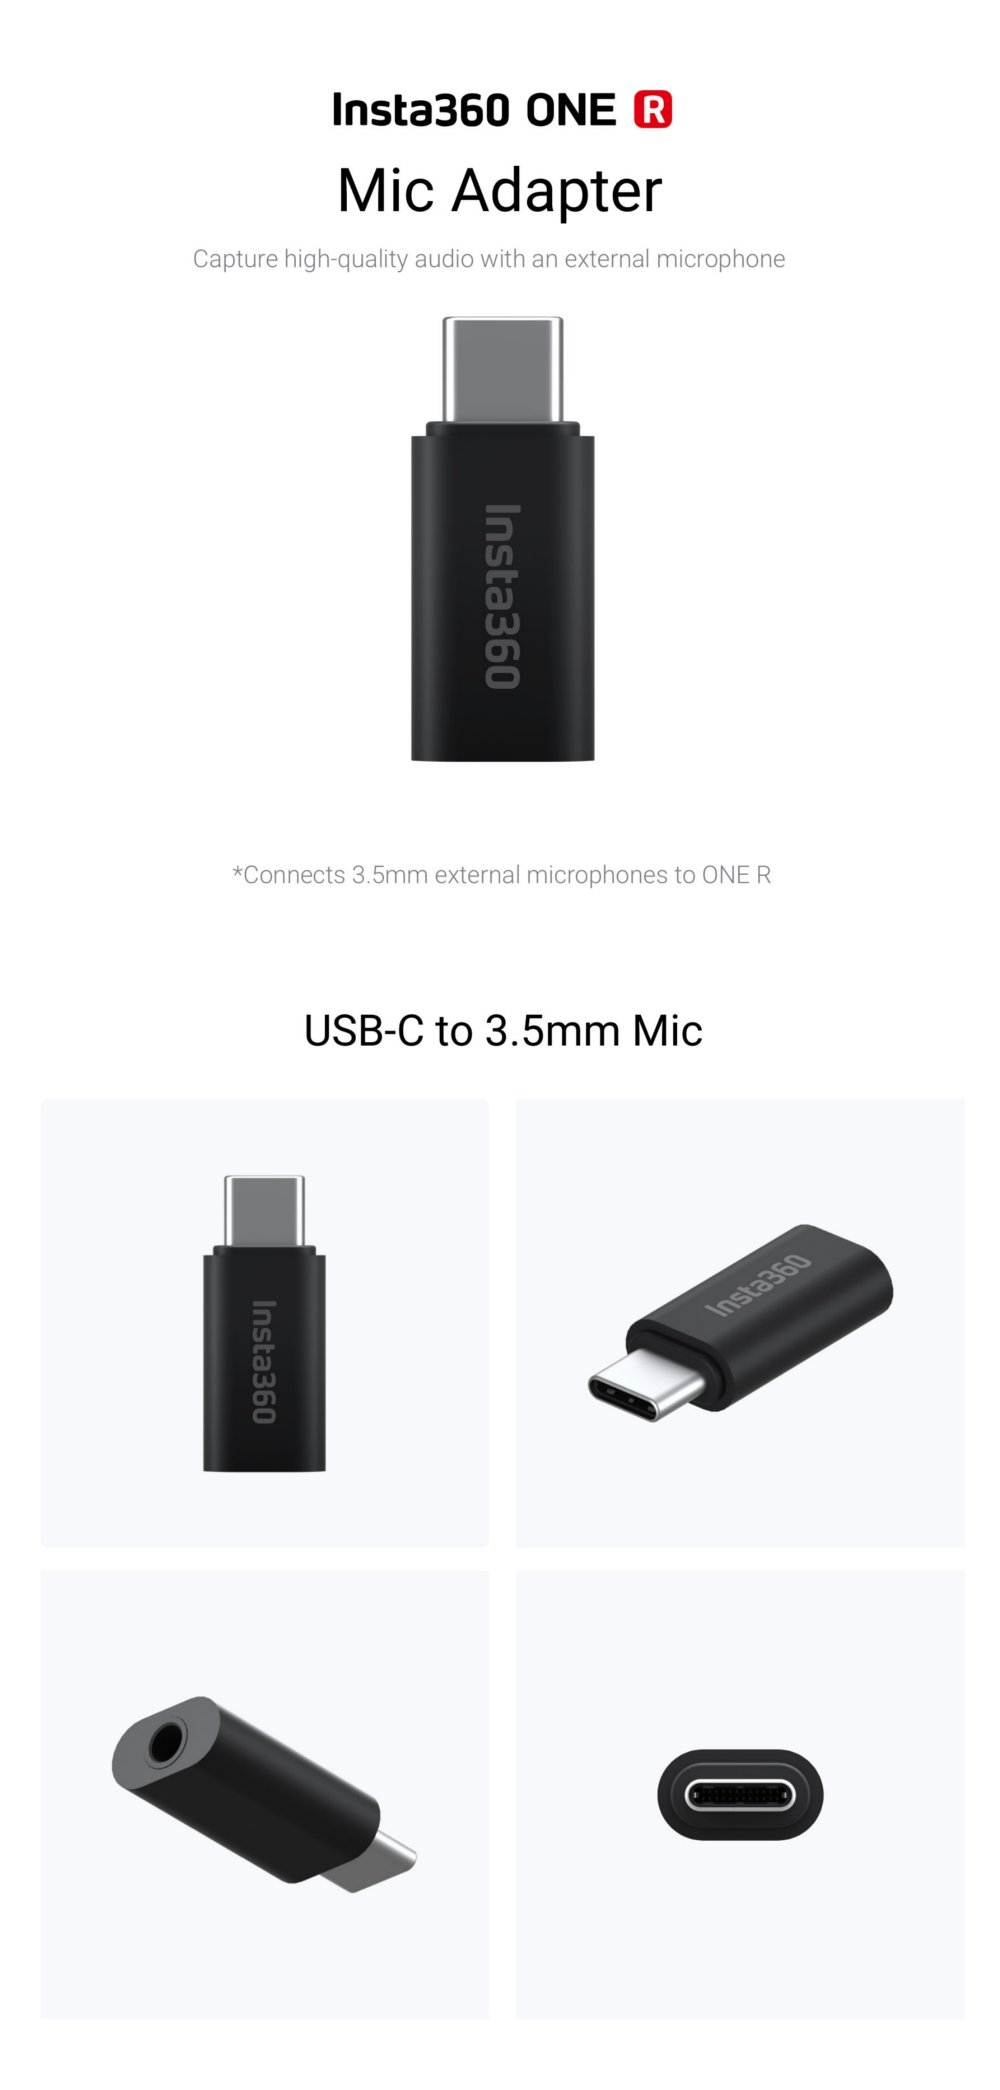 Insta360 USB-C to 3.5mm Mic Adapter For Insta360 ONE R Camera